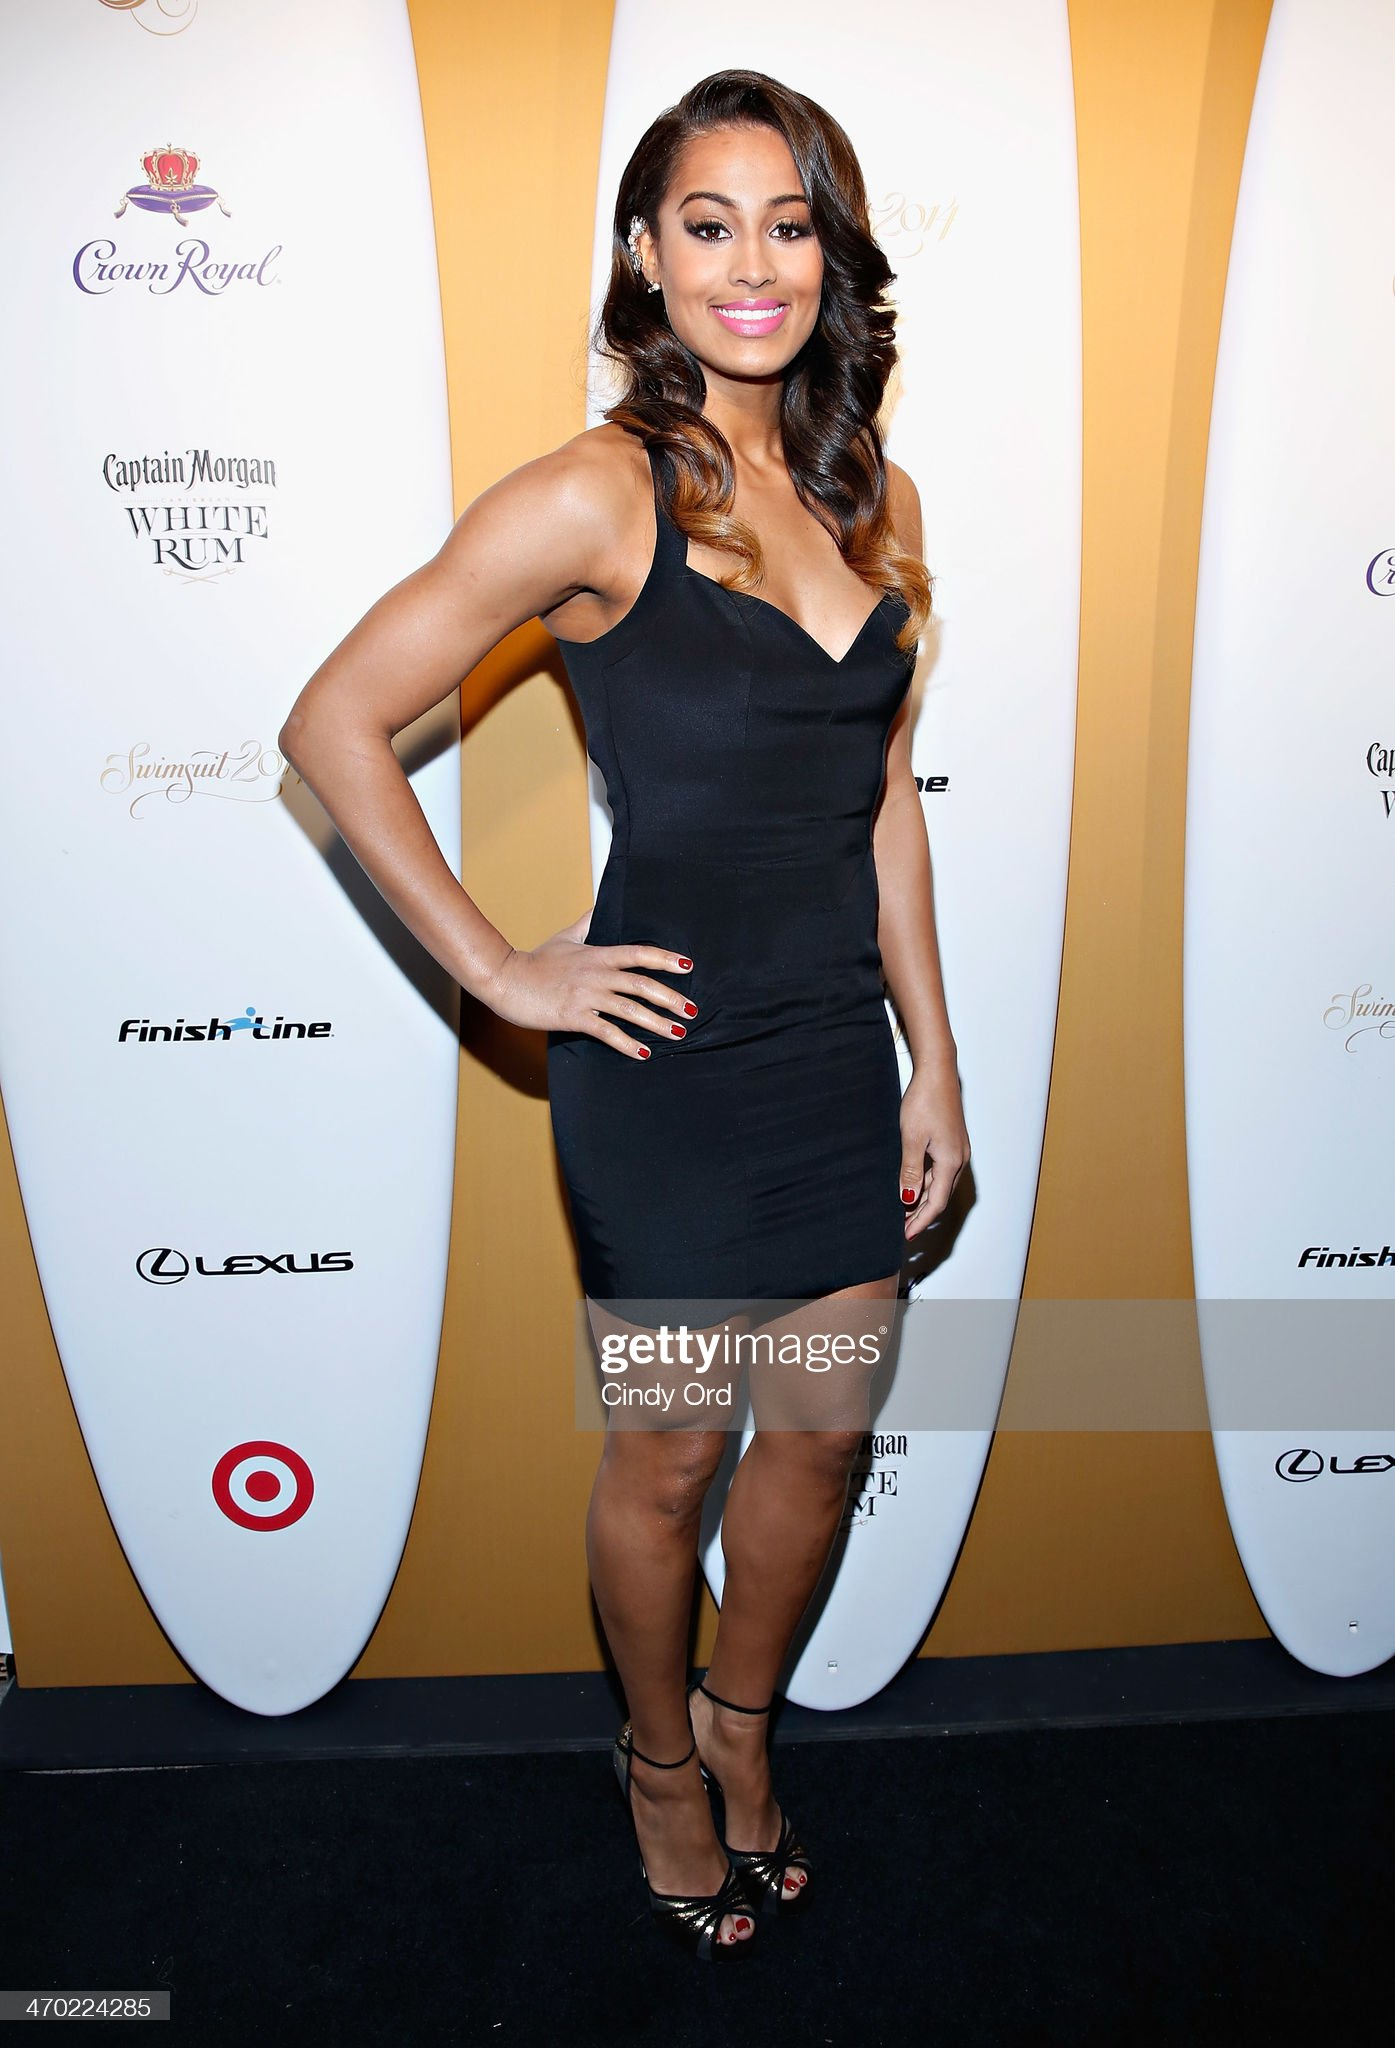 ¿Cuánto mide Skylar Diggins? - Real height Player-and-model-skylar-diggins-attends-as-captain-morgan-white-rum-picture-id470224285?s=2048x2048